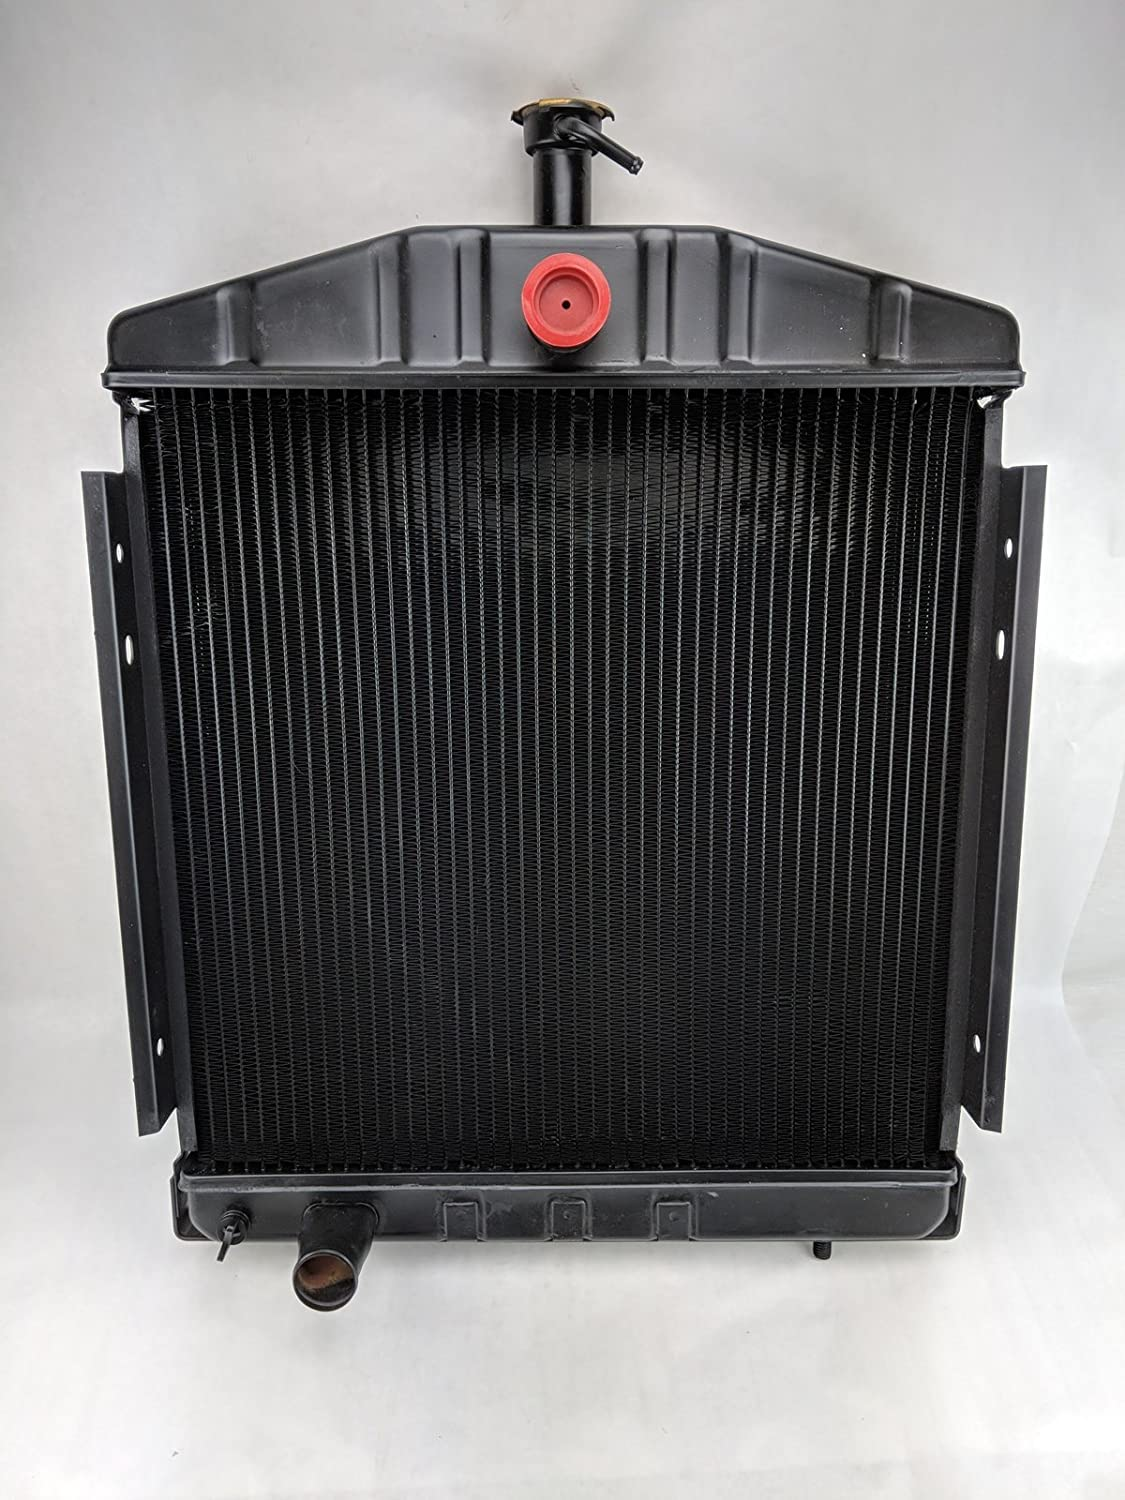 Amazon com: BWParts Radiator for Lincoln Welders - Replacement for